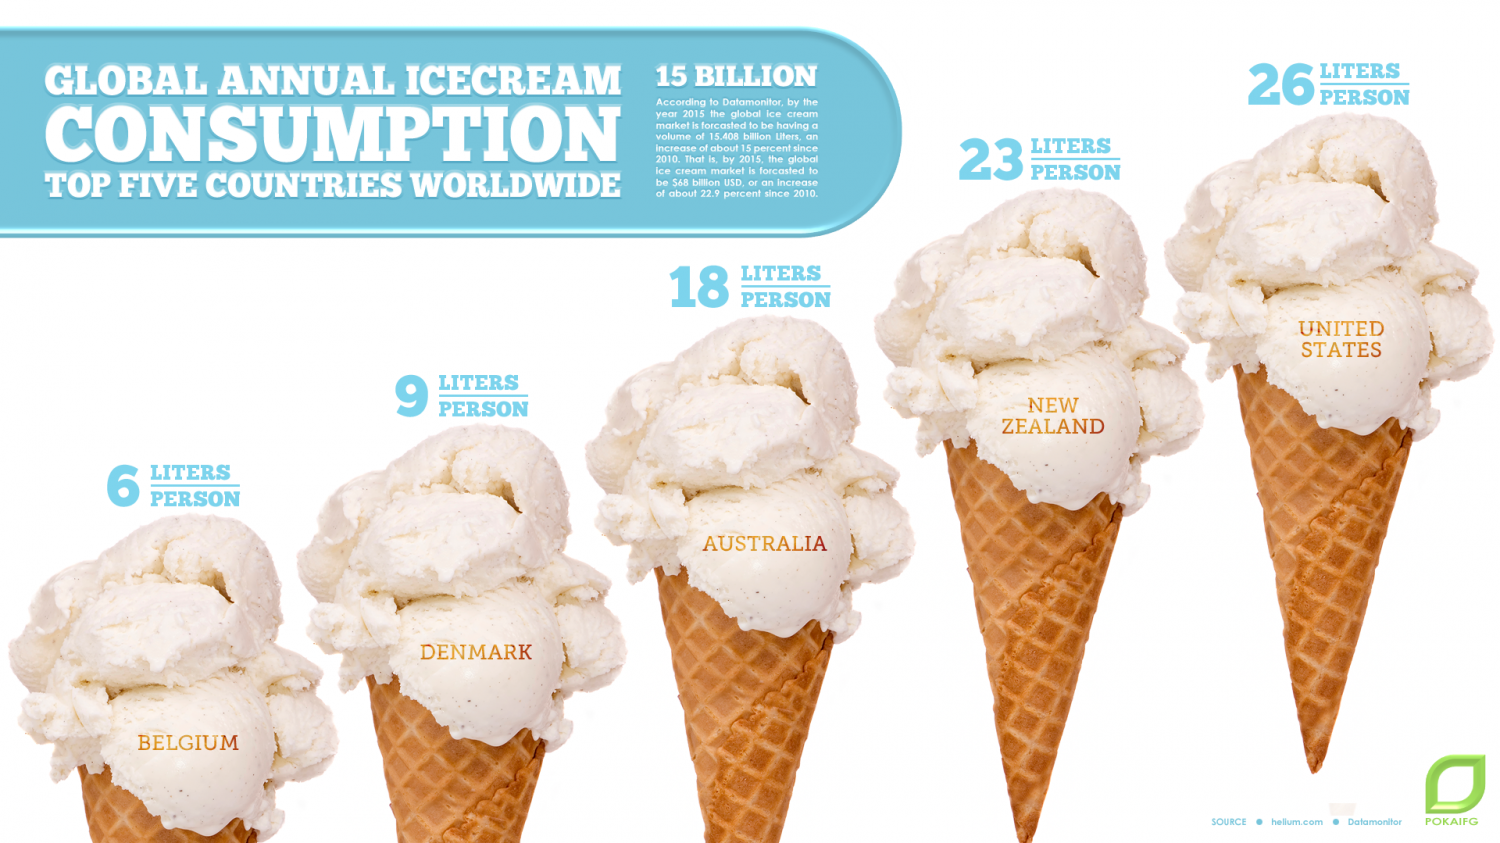 Global Annual Ice Cream Consumption: Top Five Countries Worldwide Infographic